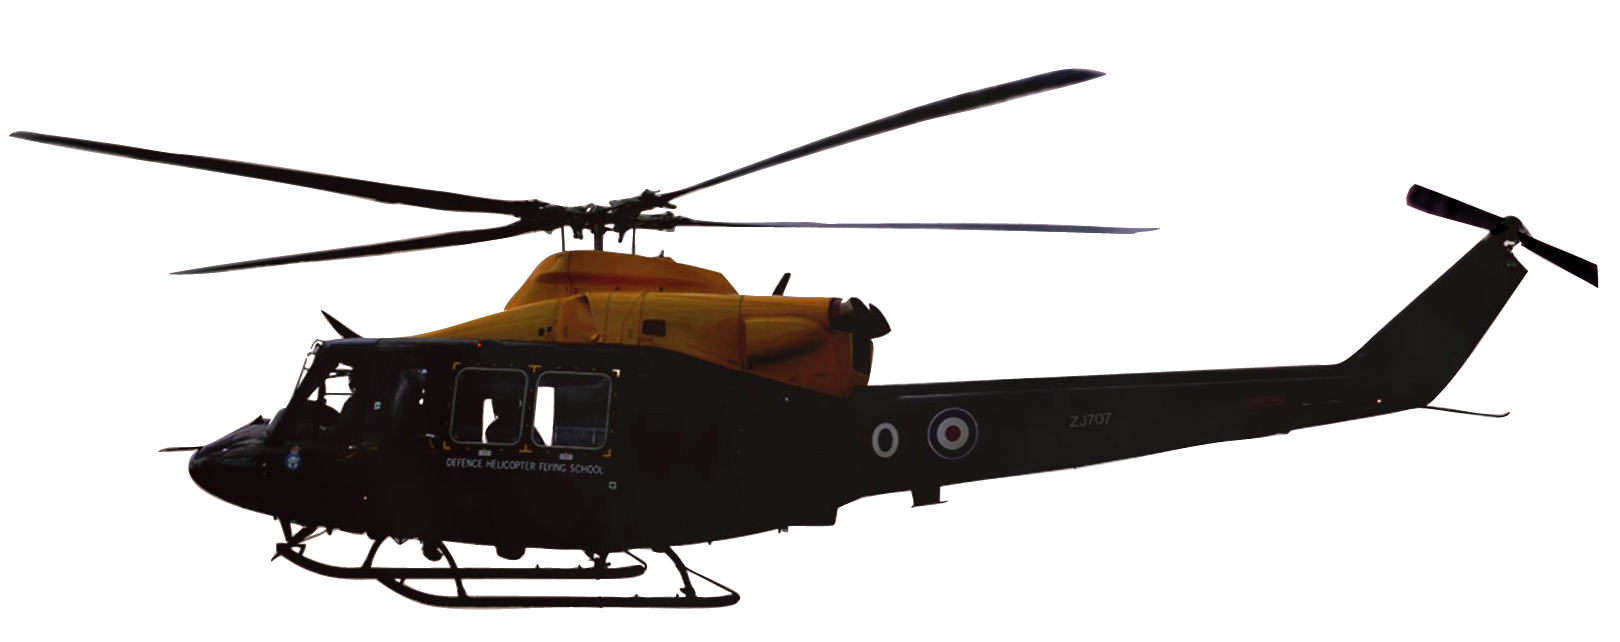 Helicopter Png image #40867